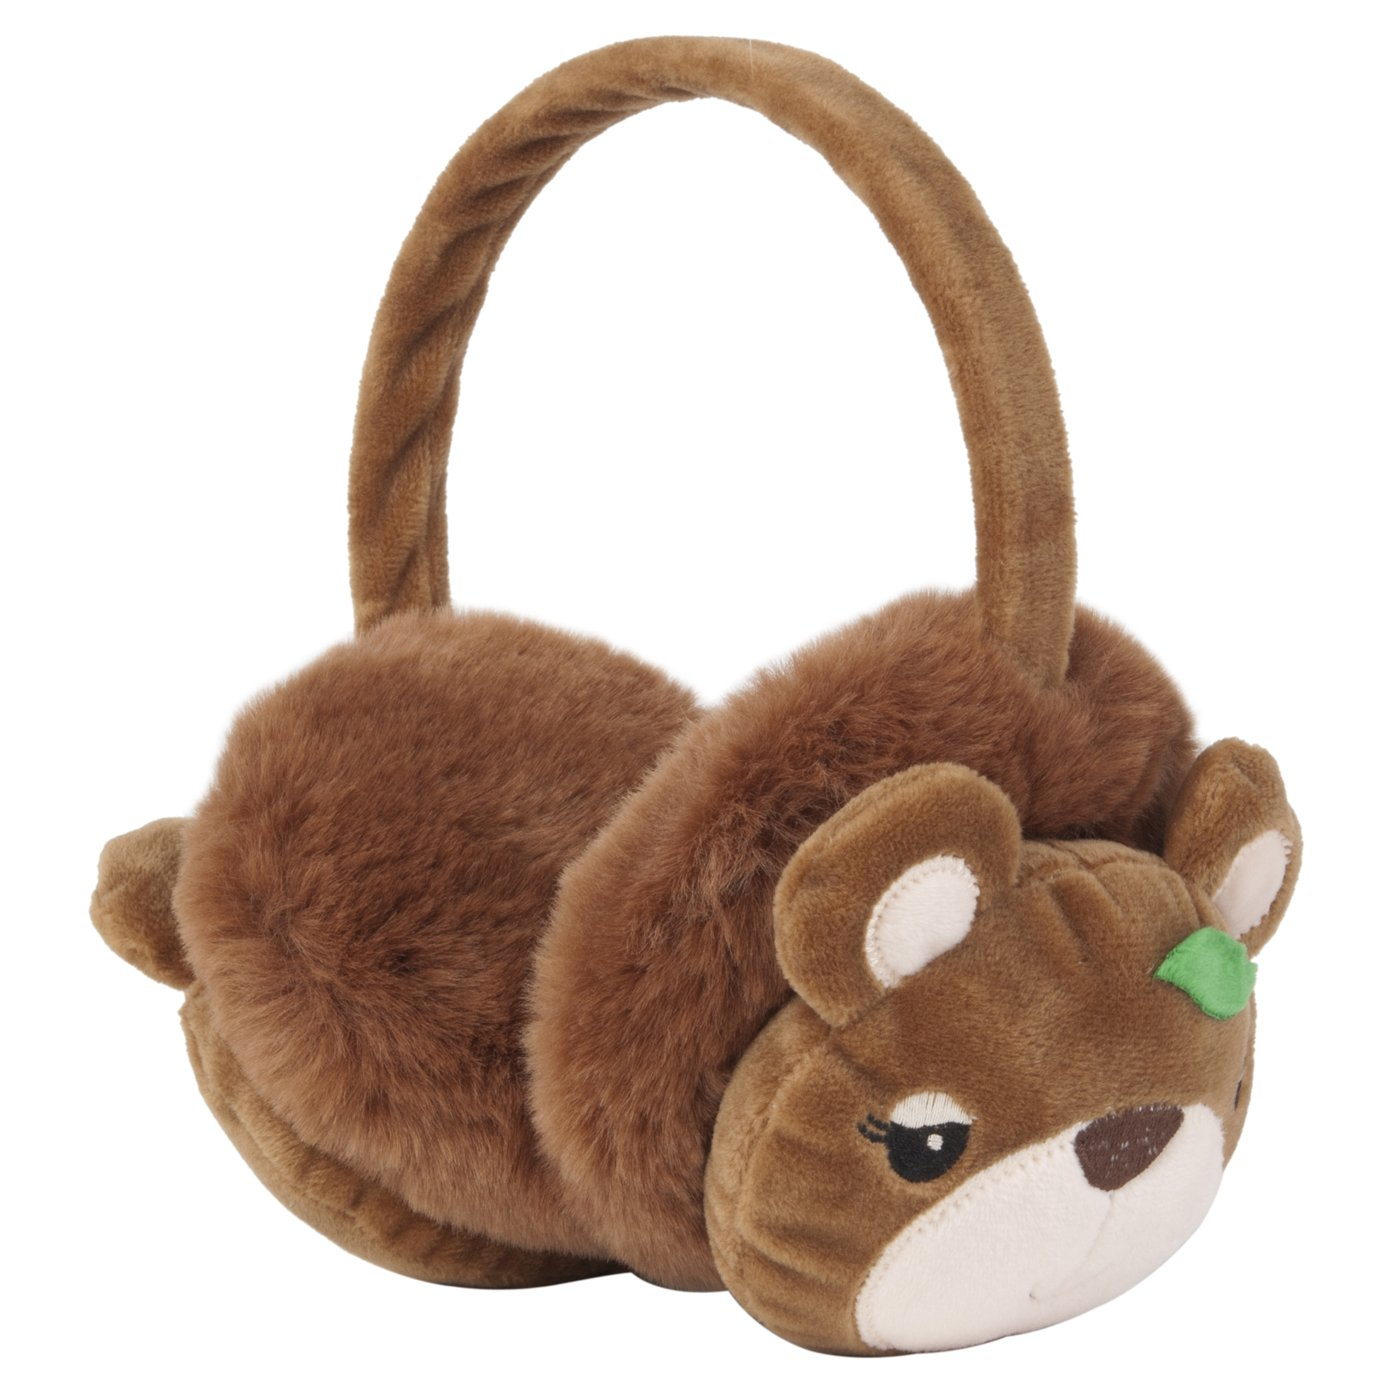 Momo Grow Marlee Bear Face Earmuffs (Fits Toddler to Adult) - Brown 220-144792-BRN